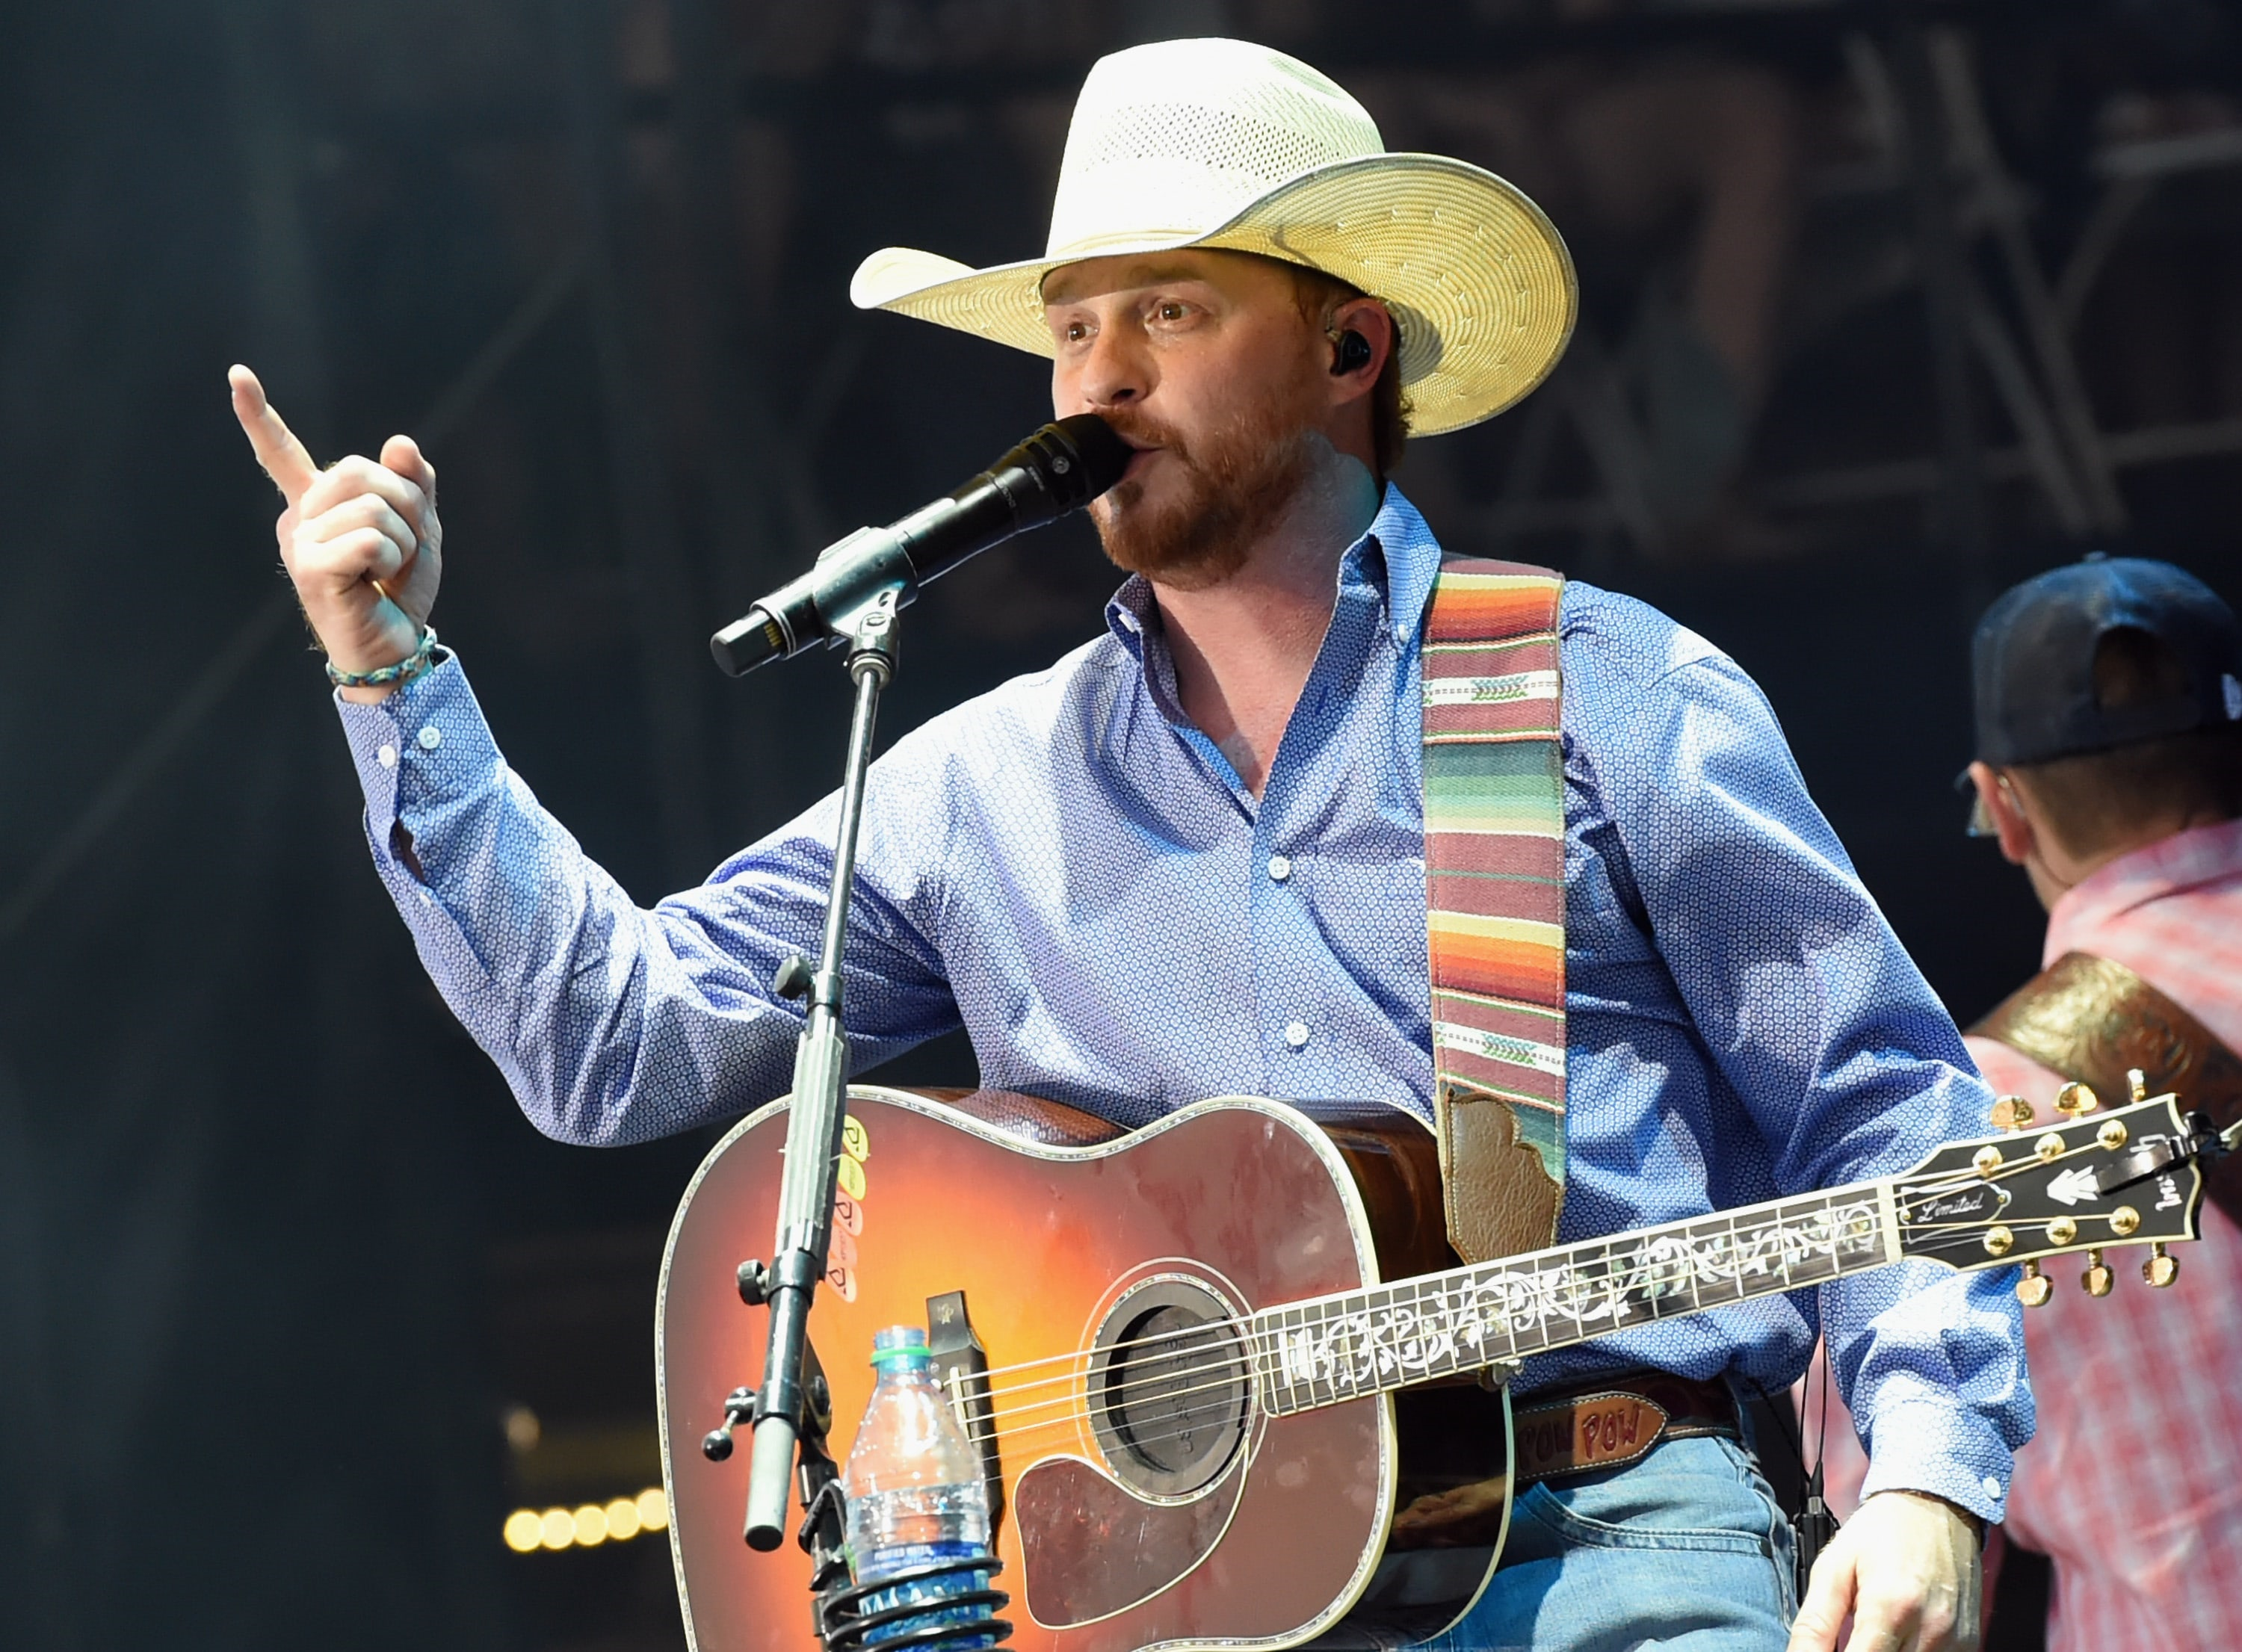 FLORENCE, AZ - APRIL 07: Cody Johnson performs during Country Thunder Music Festival Arizona - Day 3 on April 7, 2018 in Florence, Arizona. (Photo by Rick Diamond/Getty Images for Country Thunder USA)